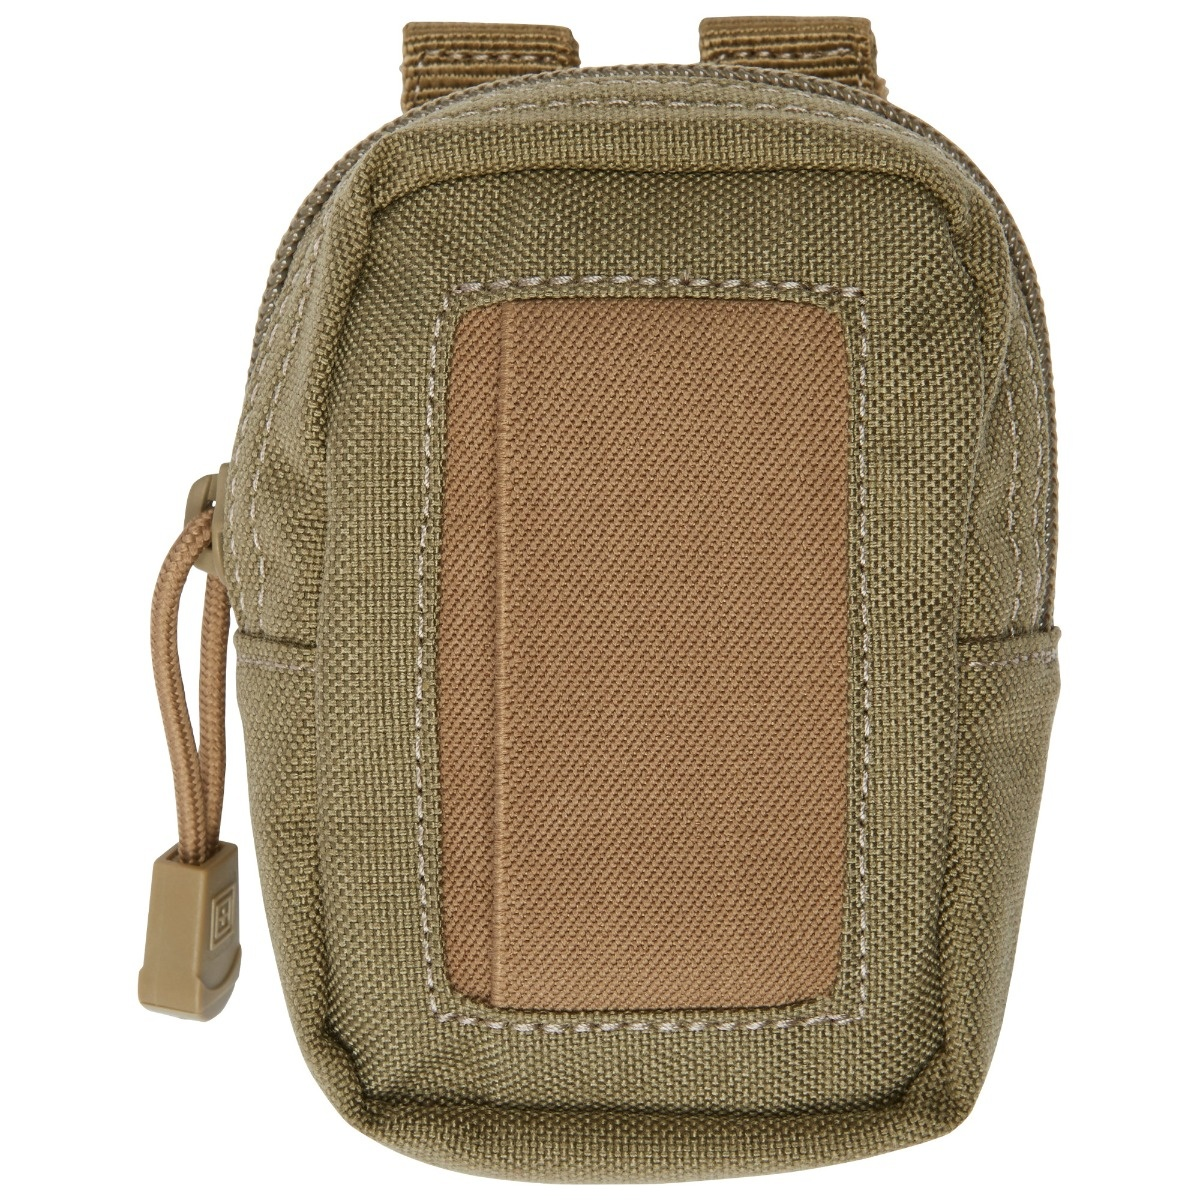 5.11 Tactical 5.11 Tactical Disposable Glove Pouch